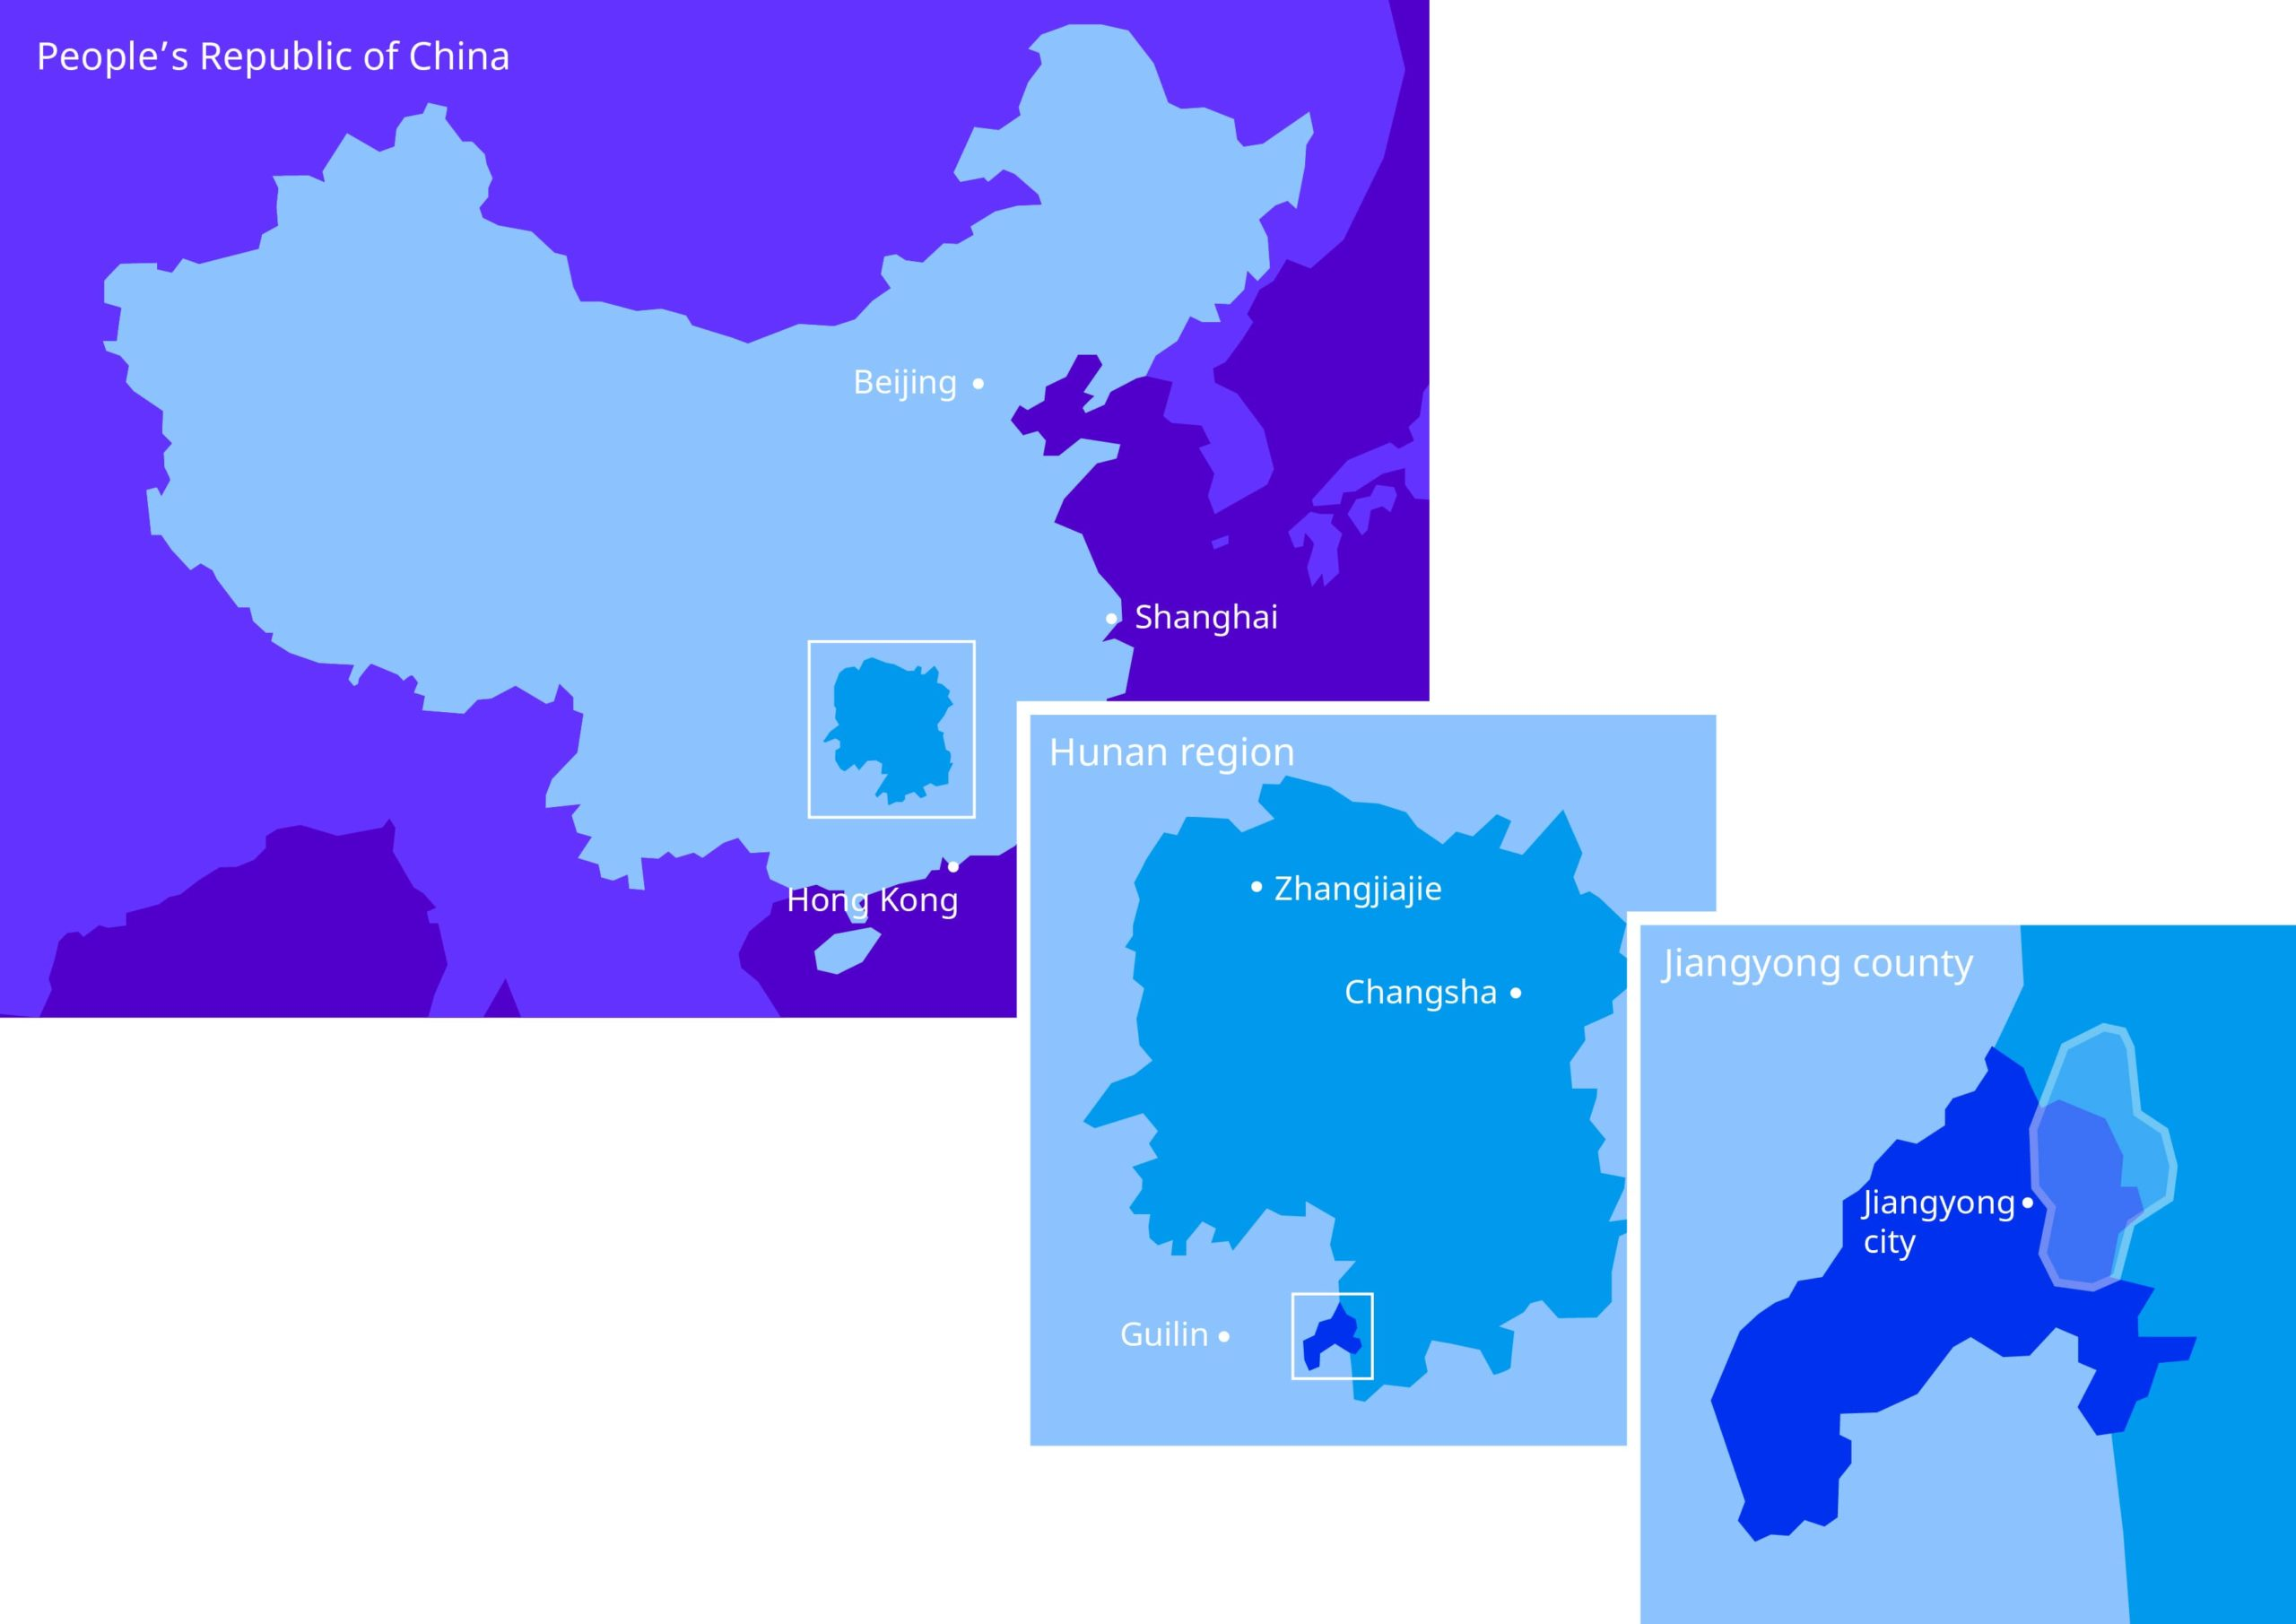 Illustration maps of China, zoom on Hunan region and Jiangyong county in shades of blue and purple